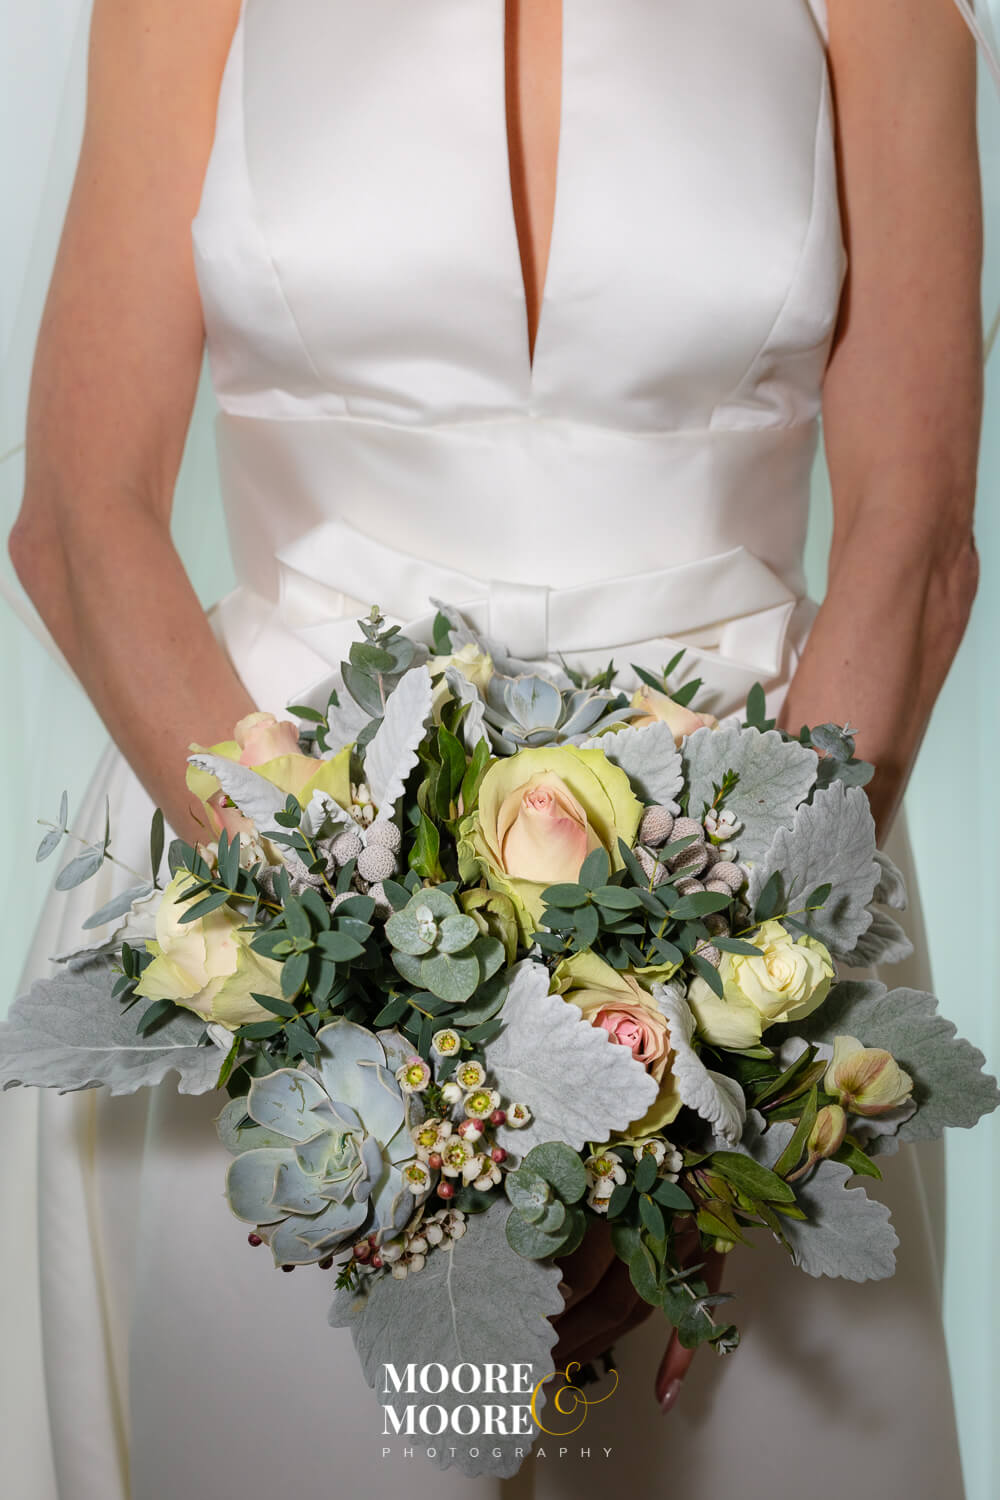 Bride holding bouquet. Wedding Photos by Moore & Moore Photography, Hampshire